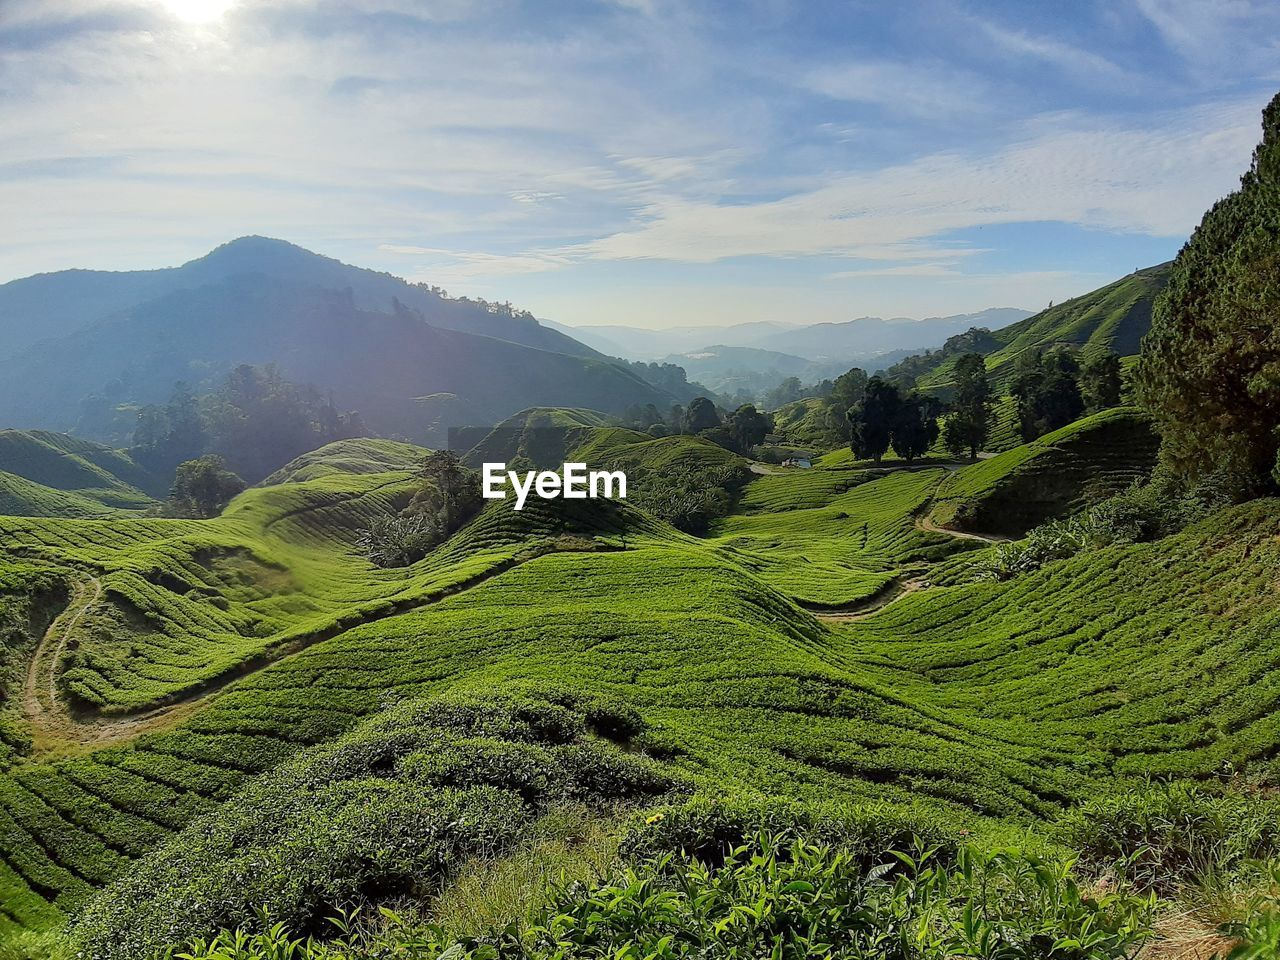 mountain, scenics - nature, beauty in nature, tranquil scene, sky, tranquility, landscape, environment, cloud - sky, green color, mountain range, plant, non-urban scene, nature, idyllic, no people, land, day, agriculture, rural scene, tea crop, outdoors, rolling landscape, plantation